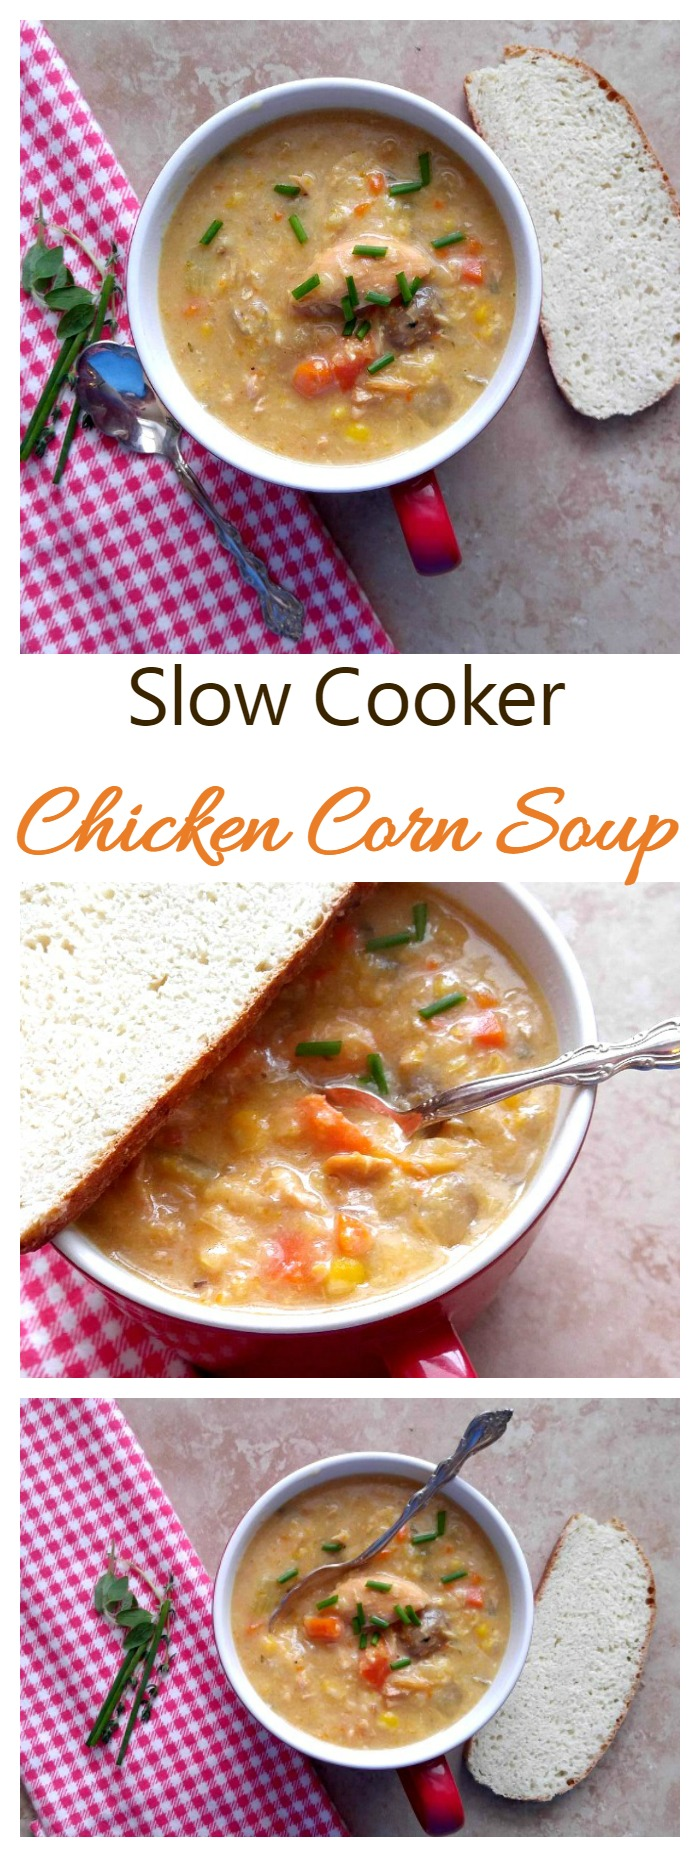 This Slow cooker chicken corn soup is perfect for a cold winter's night. It has a smokey flavor that is just amazing.